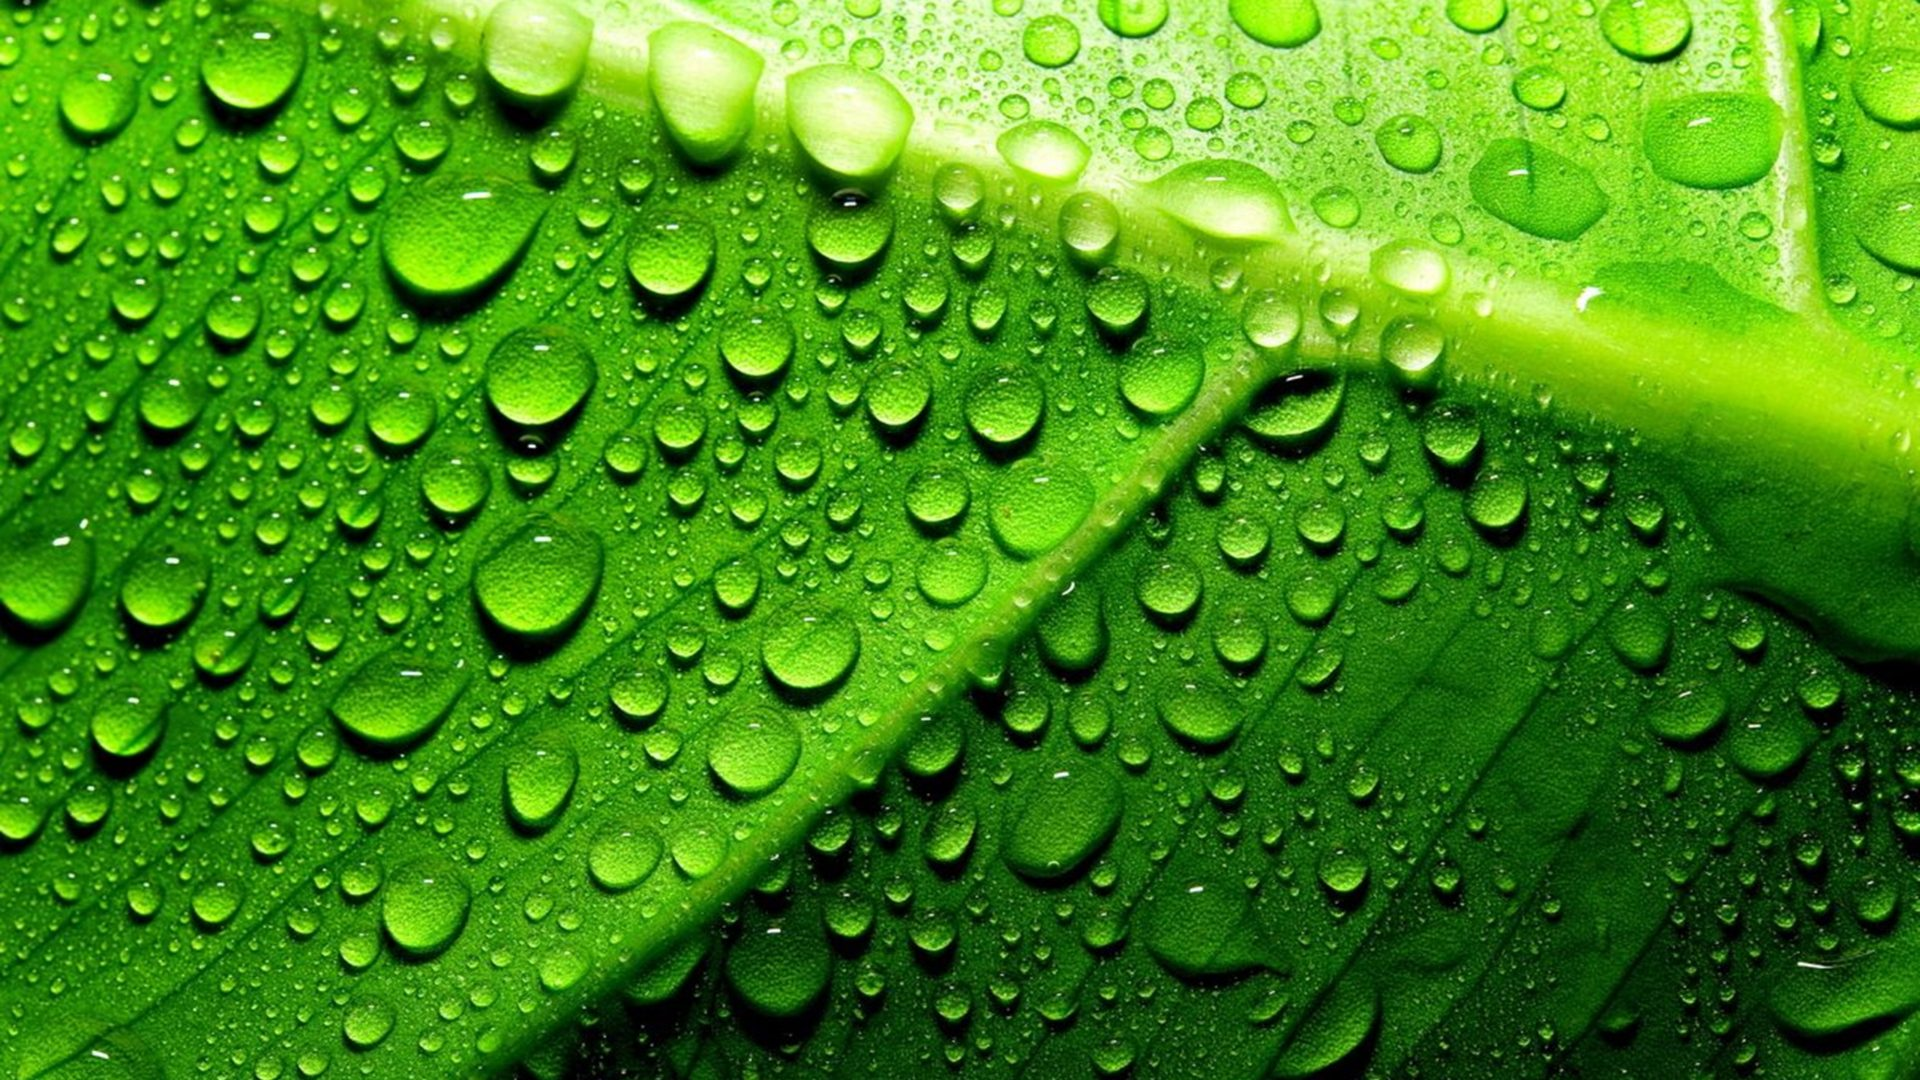 Iphone X Frame Wallpaper Green Leaf With Water Droplets Hd Wallpaper Wallpapers13 Com